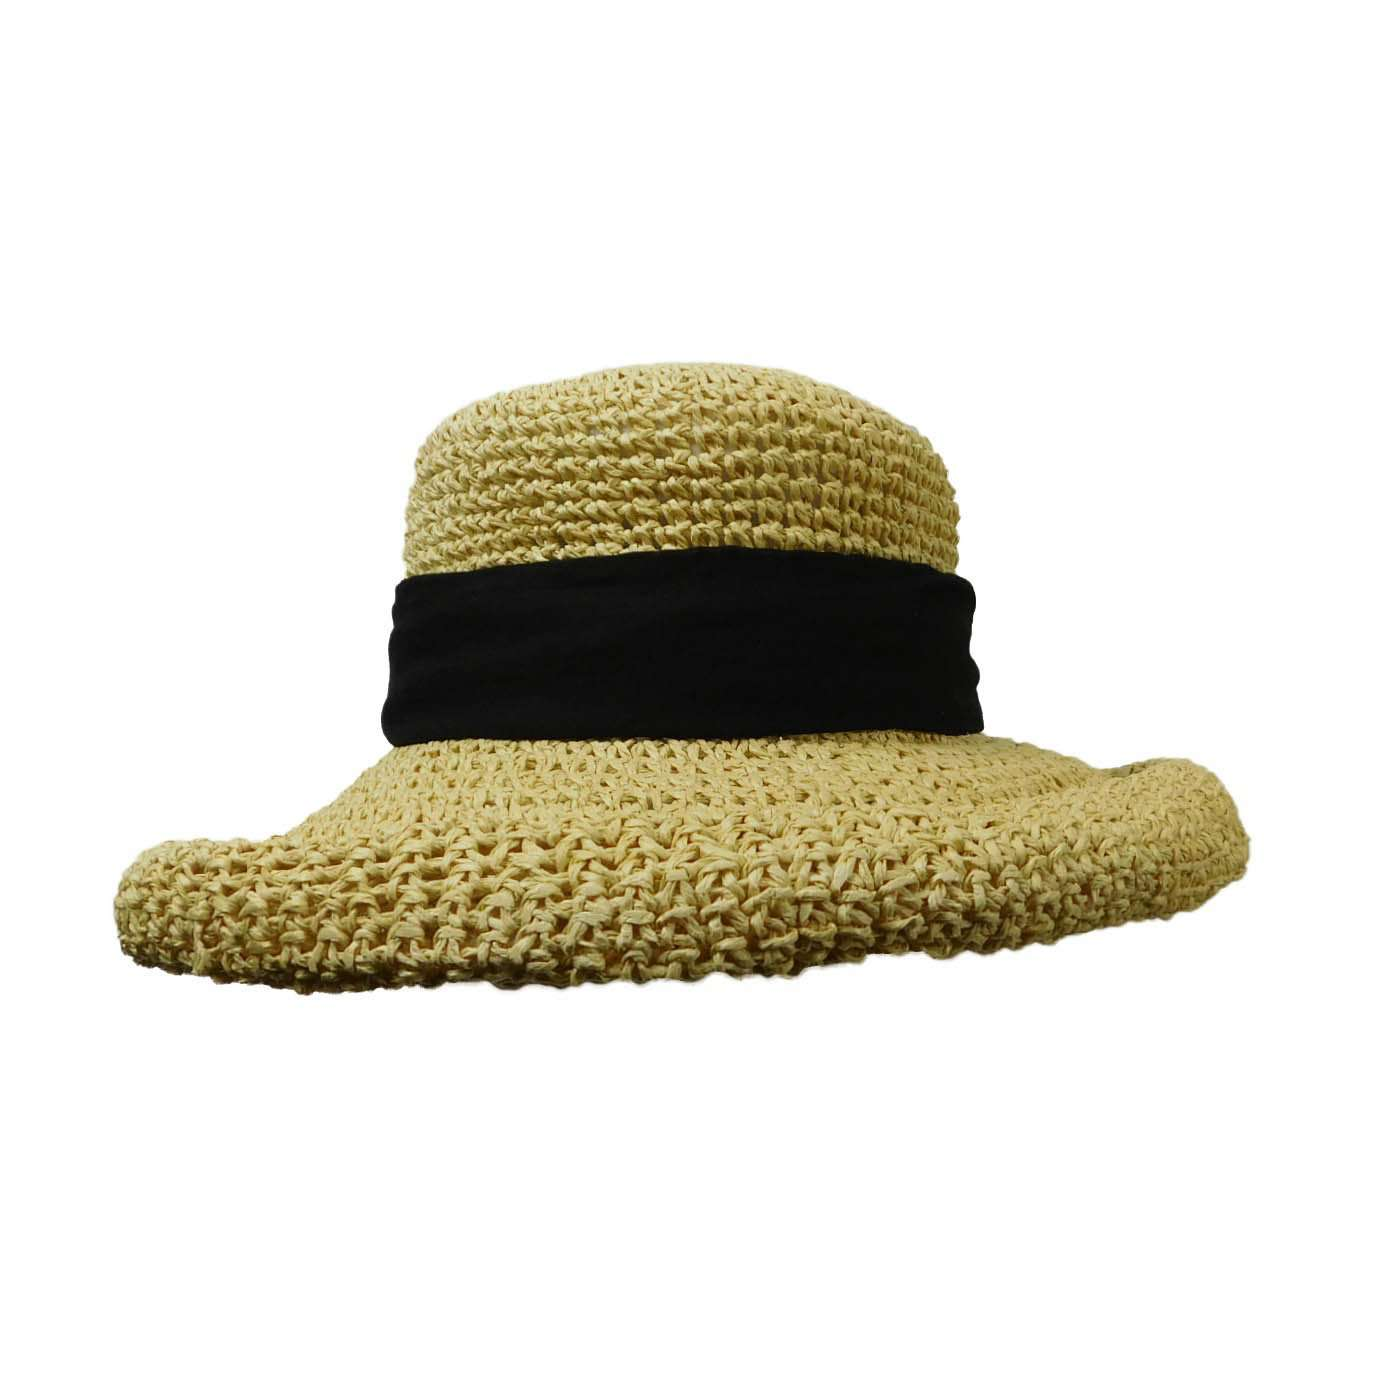 Rolled Brim Toyo Straw Hat with Gauze Tie-ScalaPronto-Packable Sun Hat 6c409e38cf33